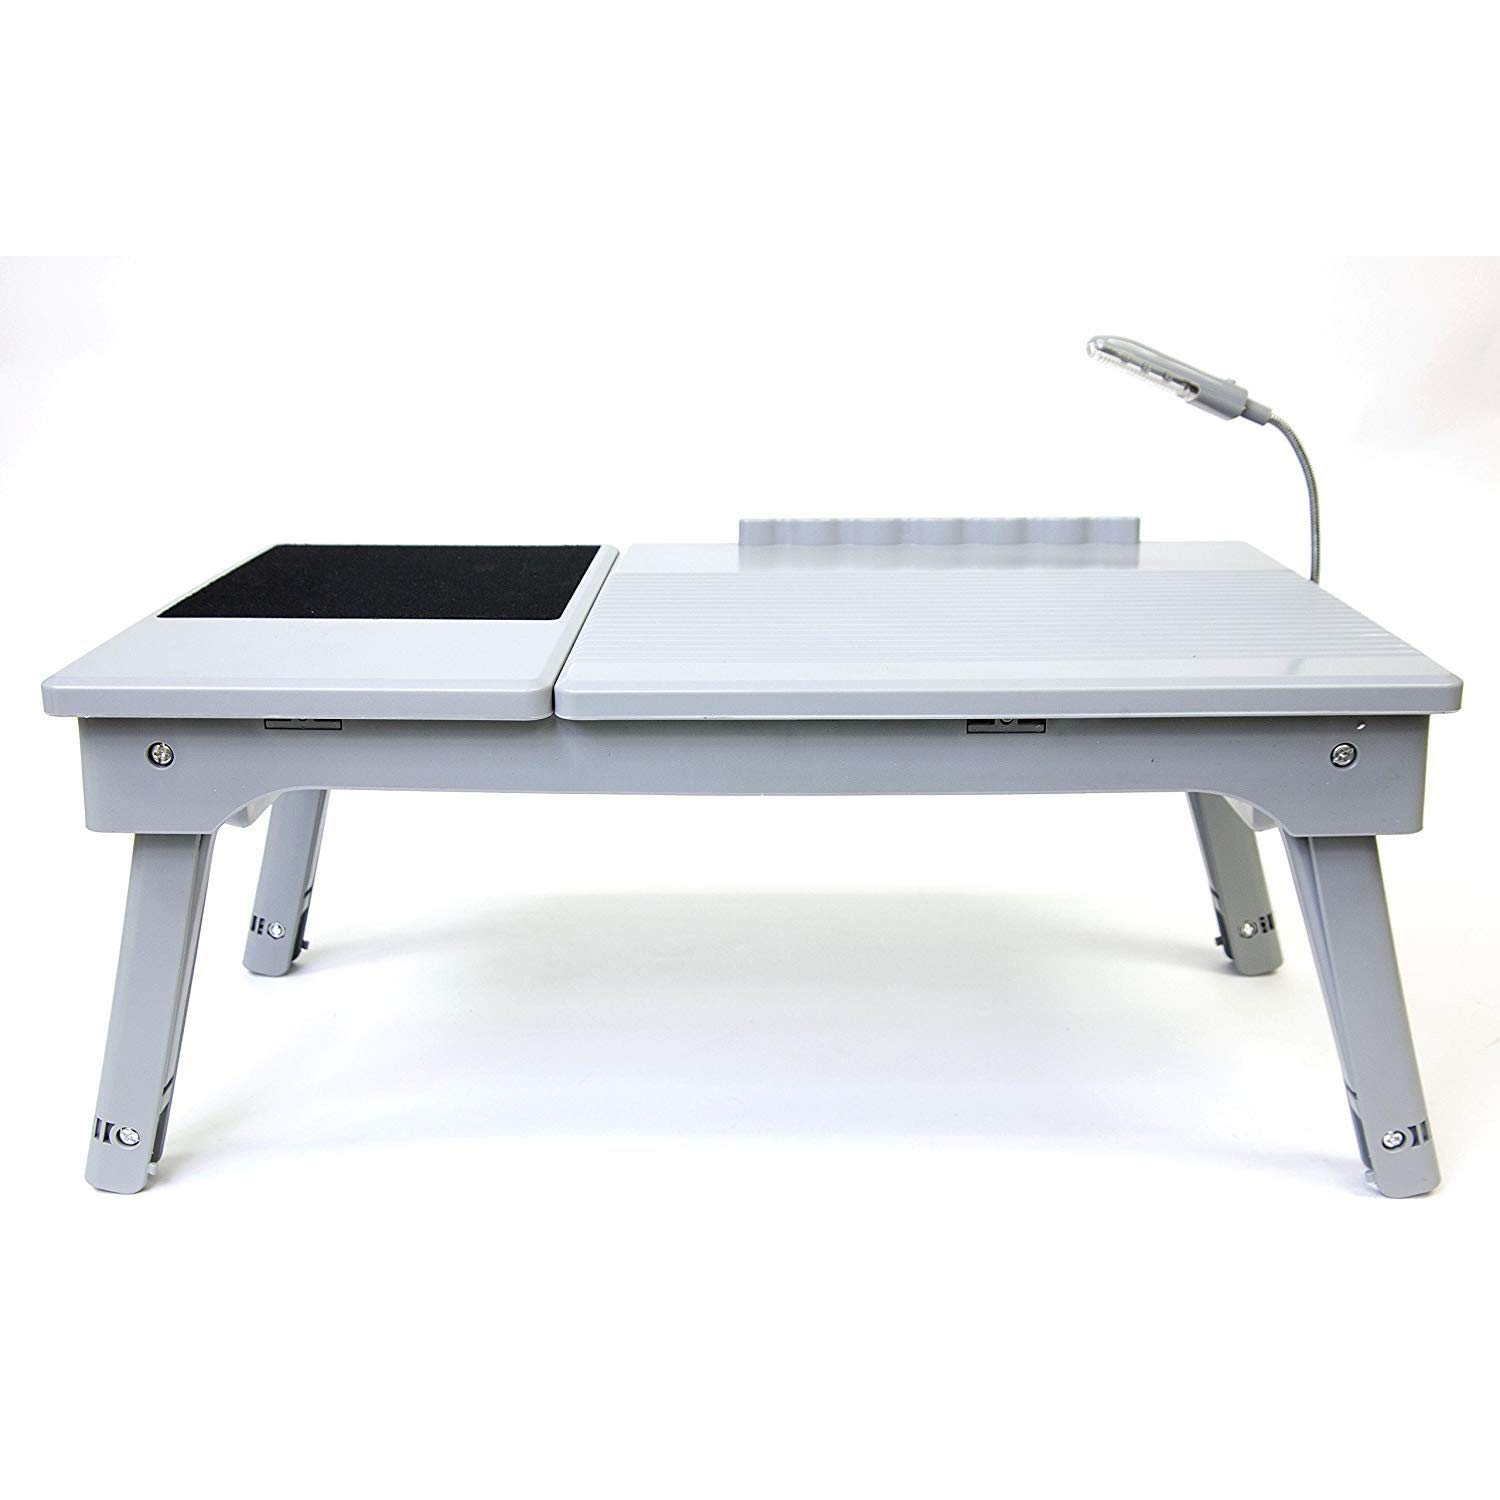 MRT SUPPLY Adjustable Height Tabletop Desk, Silver/Black with Ebook